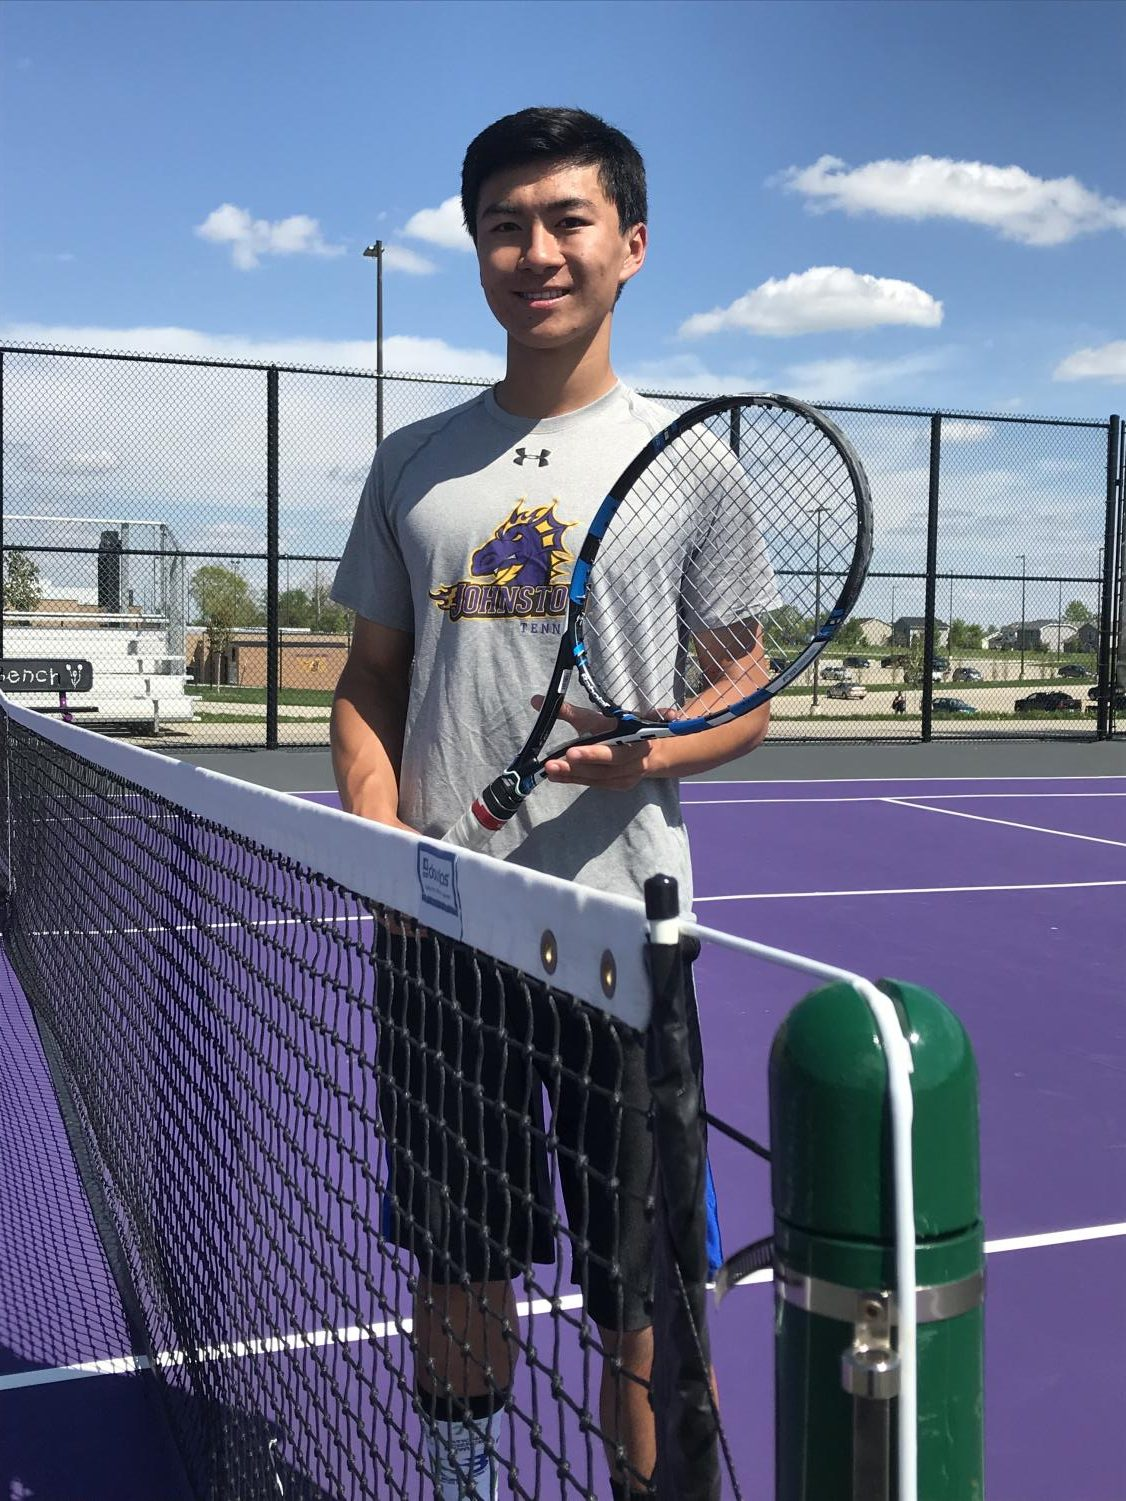 Chris Yao '19 holds his tennis racket on the Johnston tennis courts.